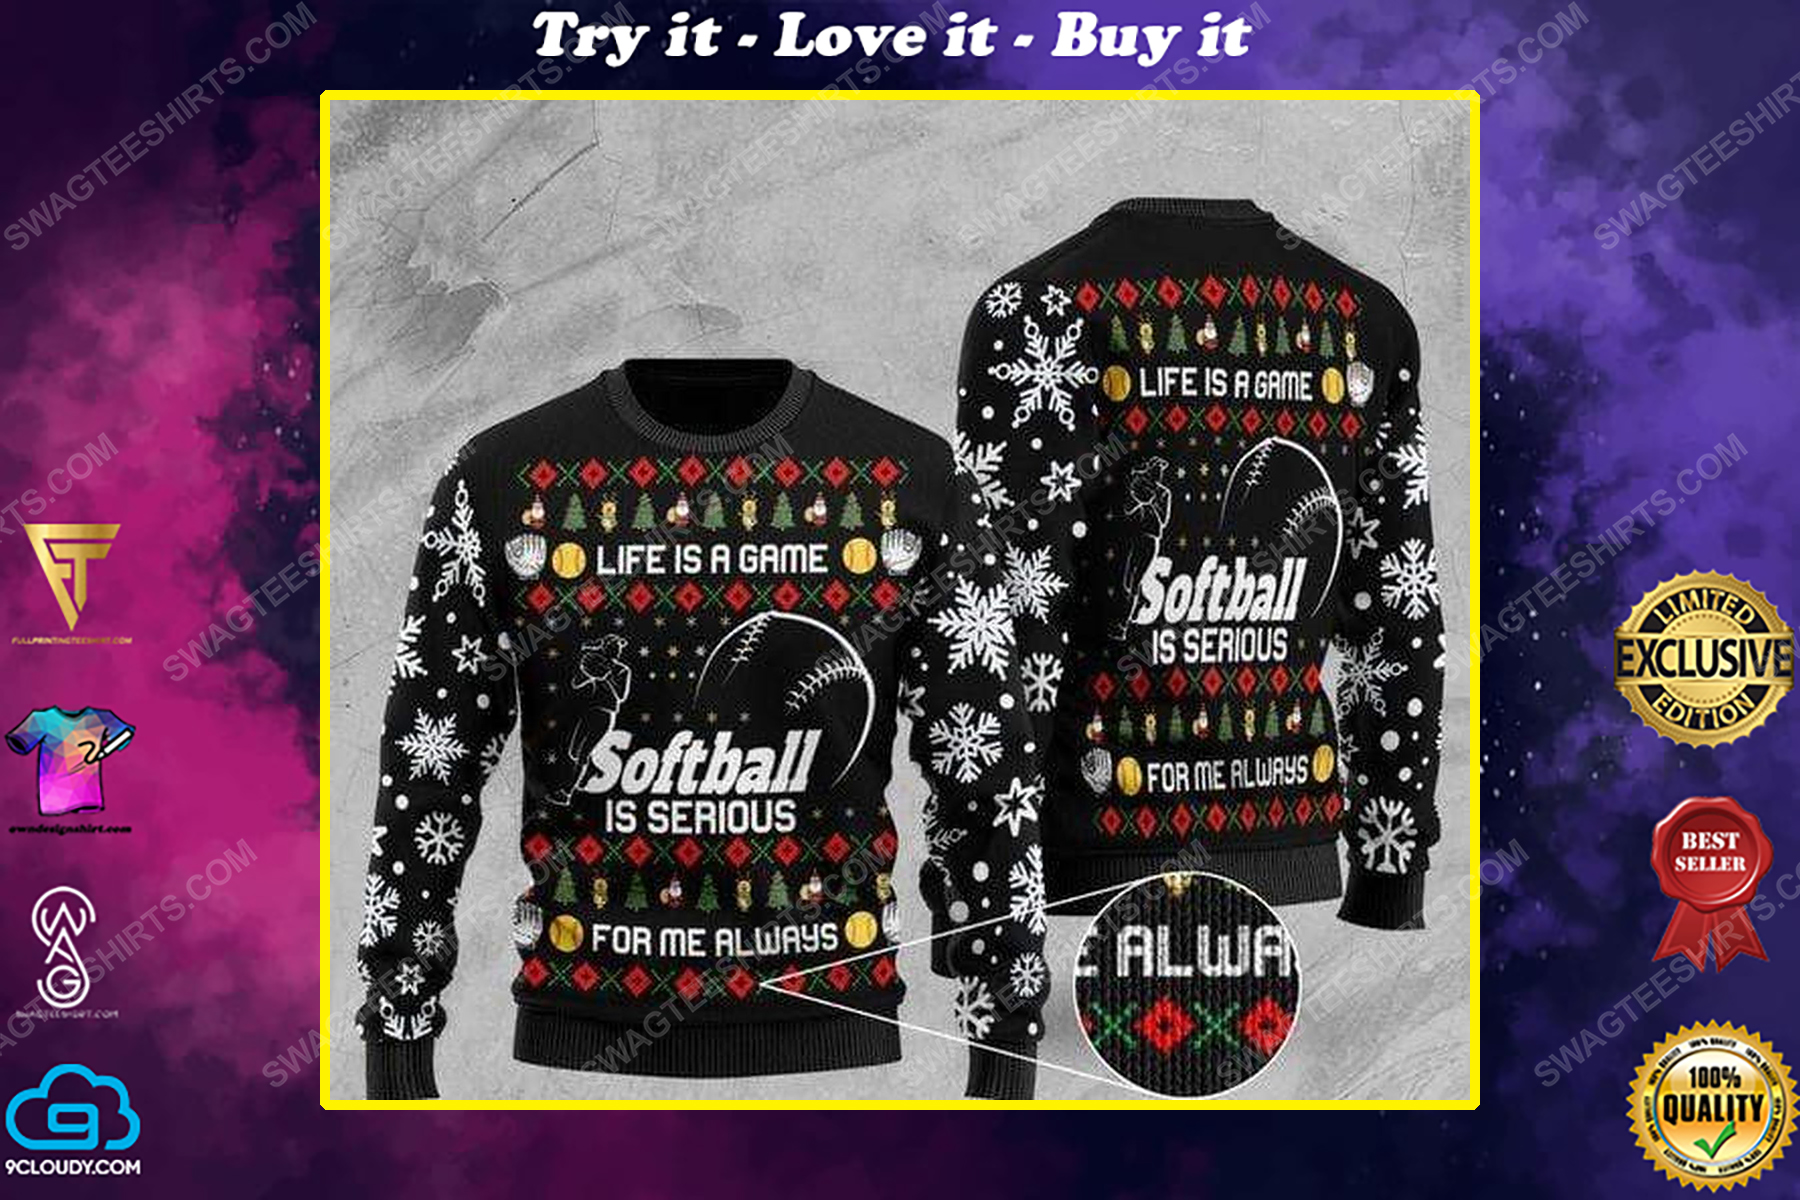 Life is a game softball is serious ugly christmas sweater